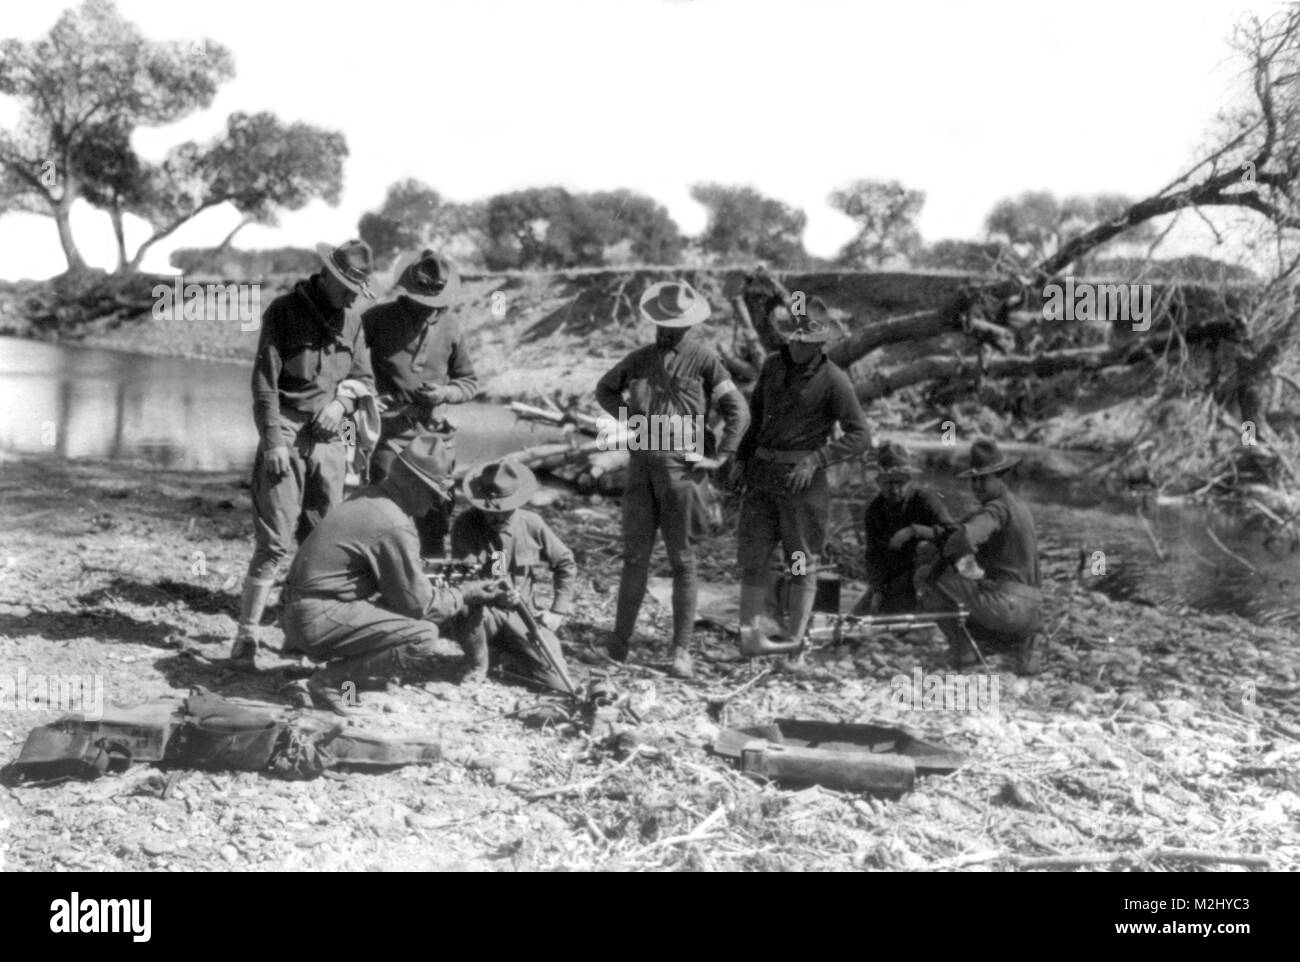 Pancho Villa Expedition, 16th Infantry, 1916 - Stock Image